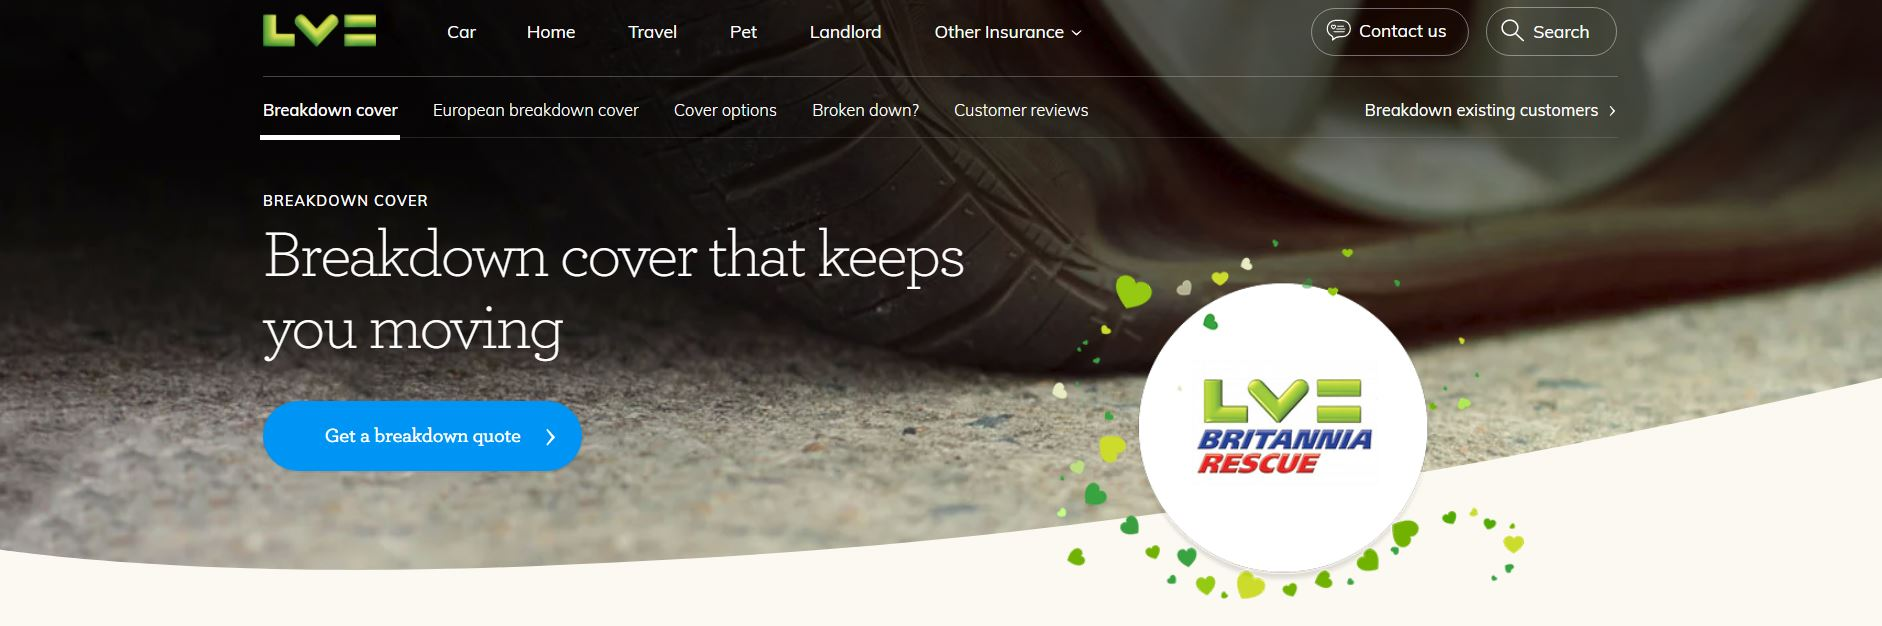 LV= Britannia Rescue website home page